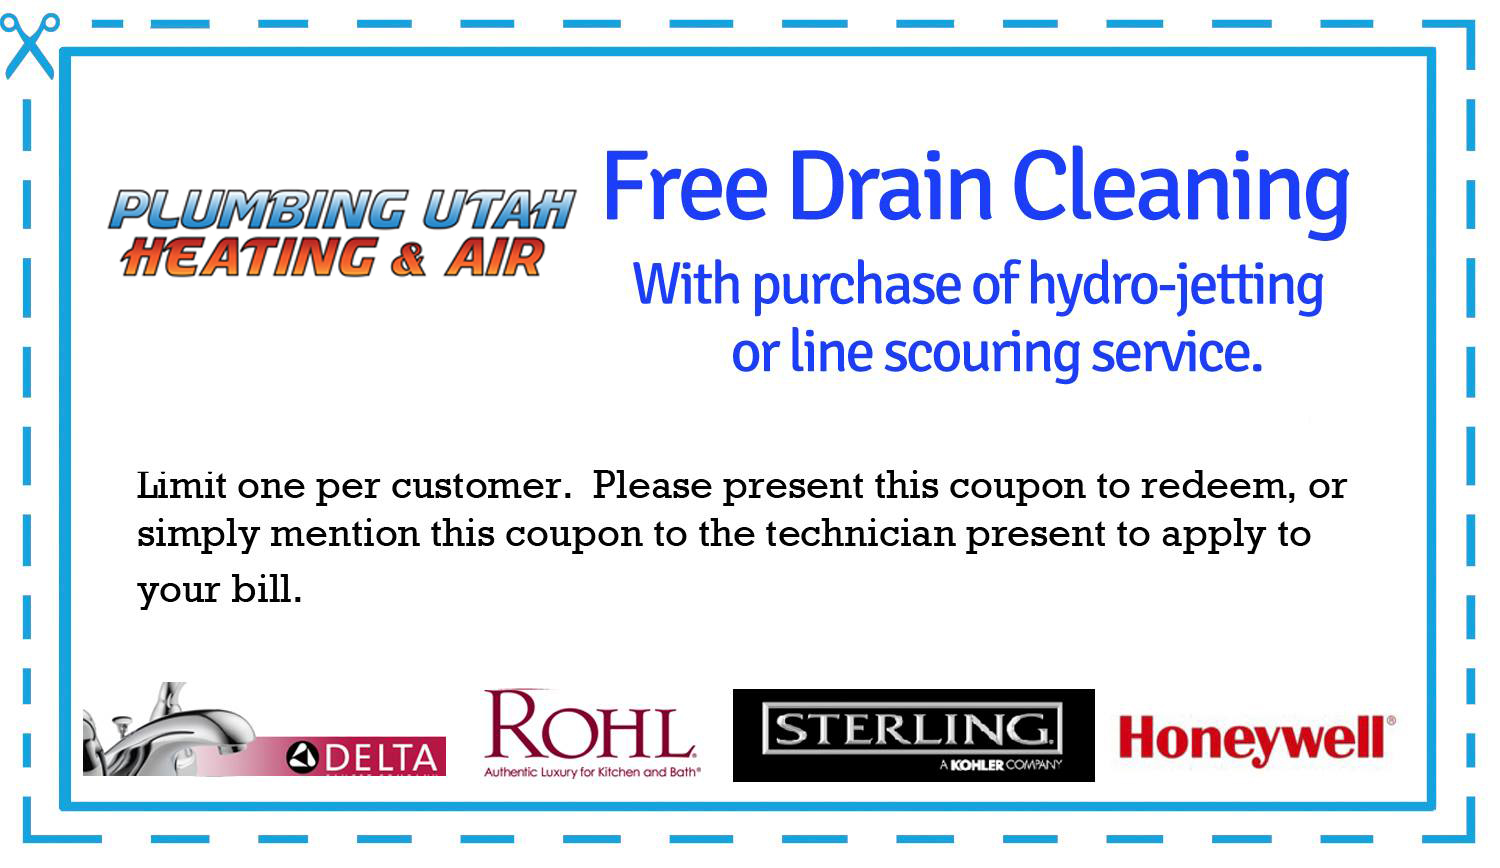 plumbing-utah-heating-air-free-drain-cleaning